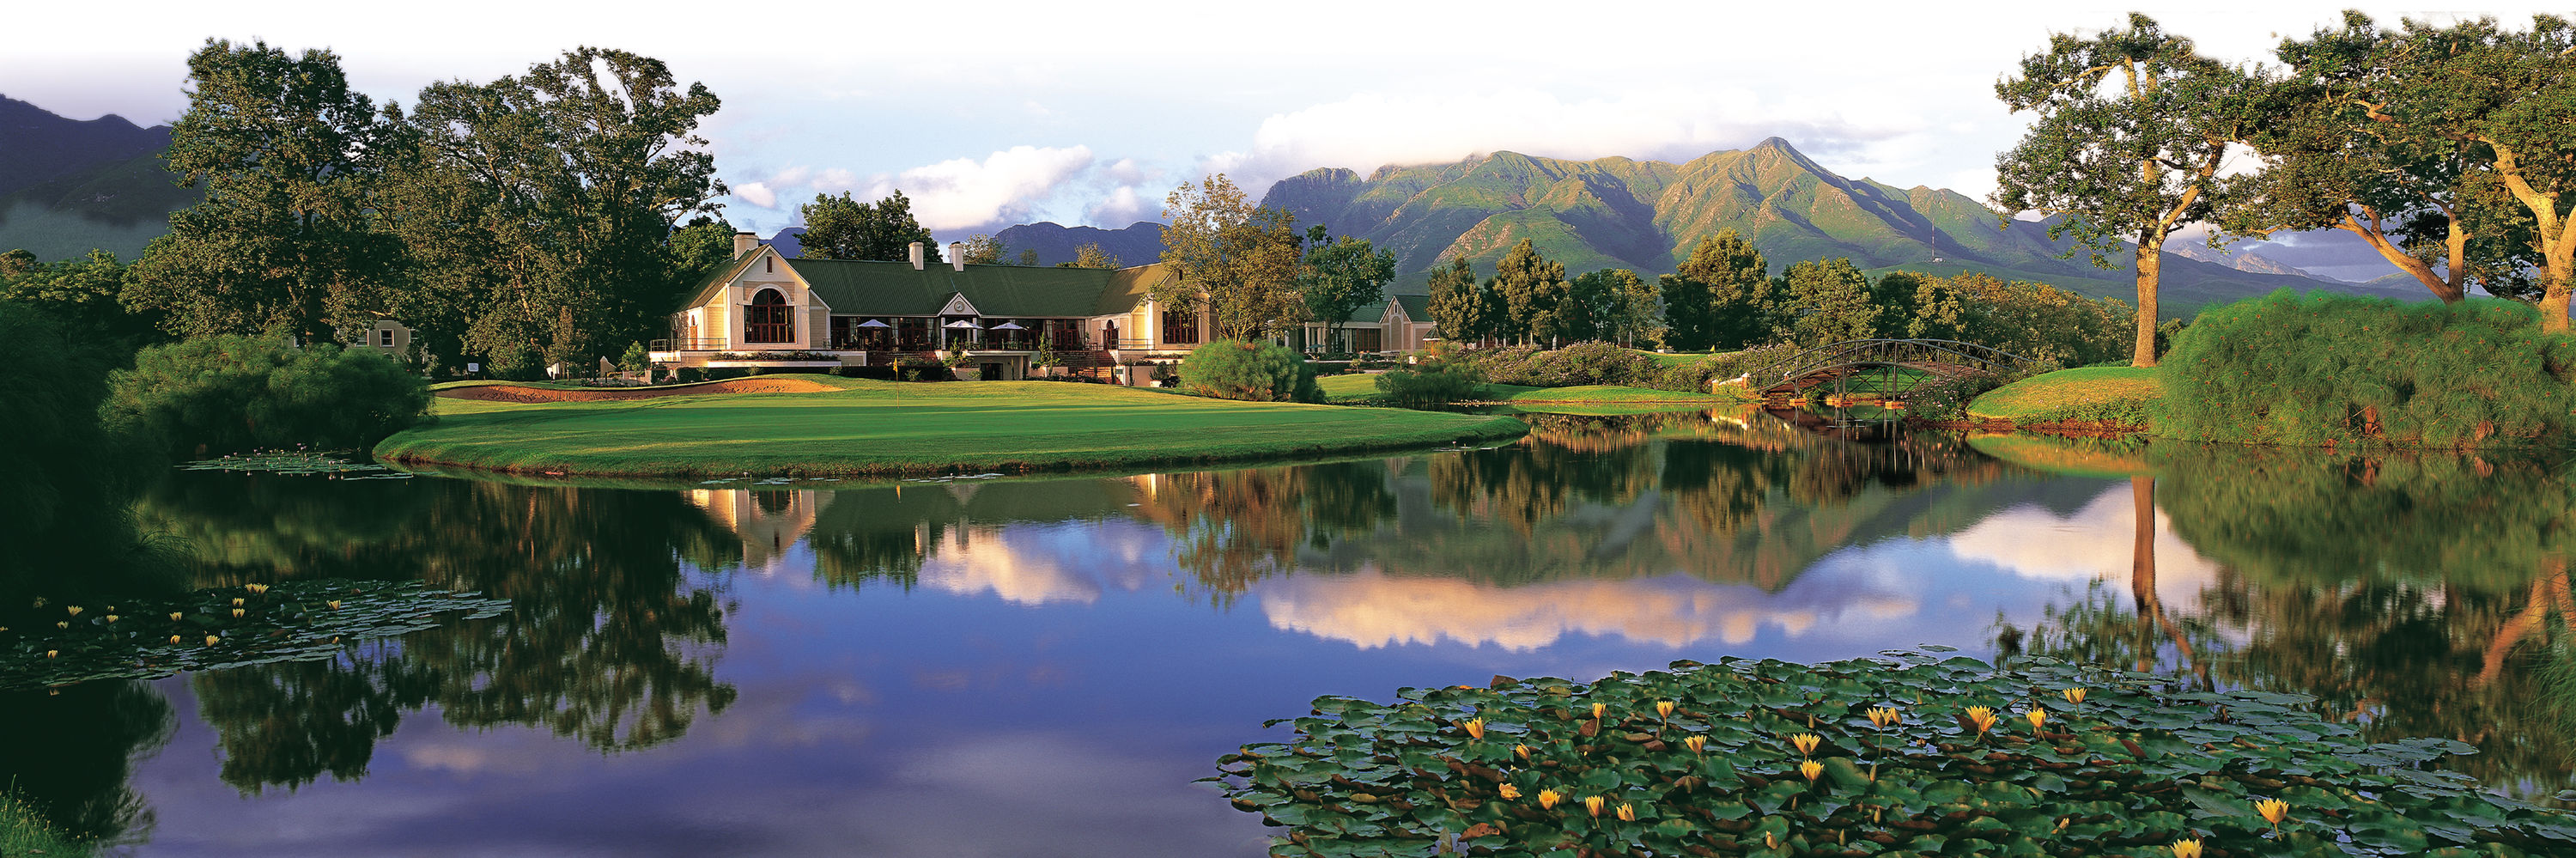 Fancourt hotel and country club estate cover picture